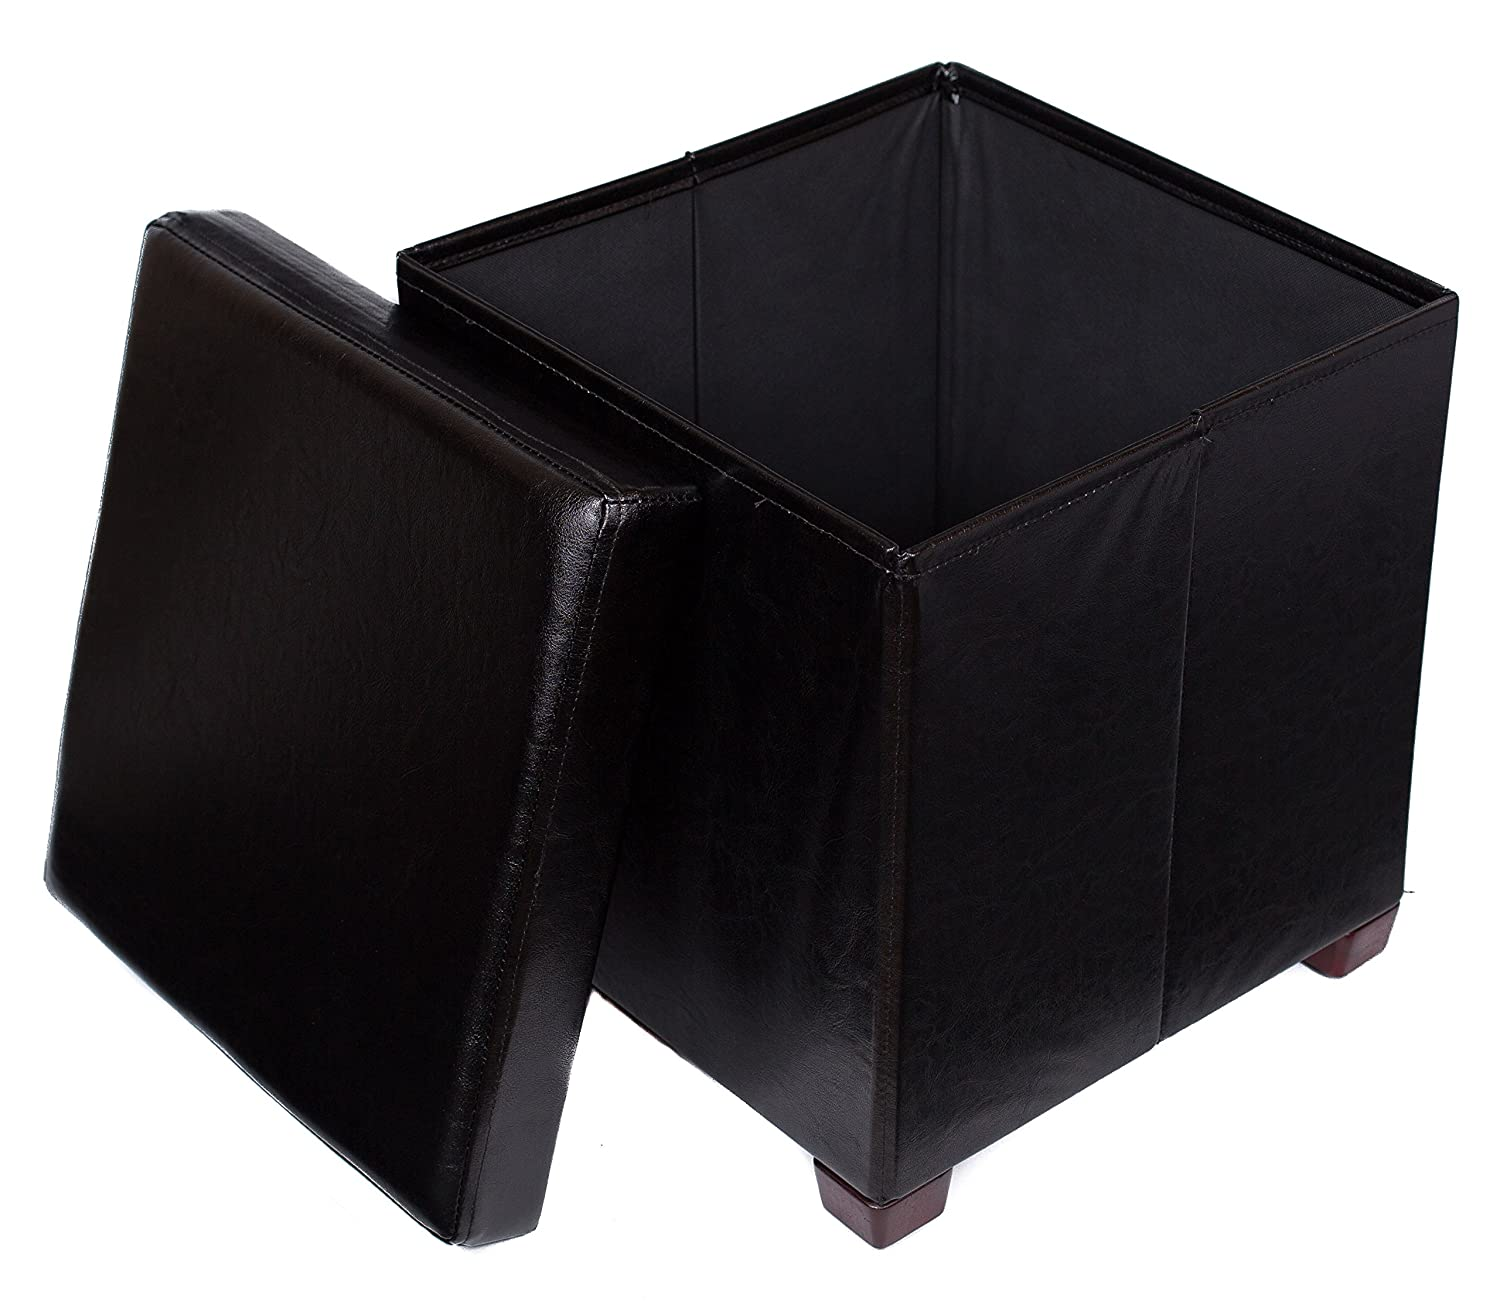 BirdRock Home Faux Leather Storage Ottoman (Black, With Legs) 1253